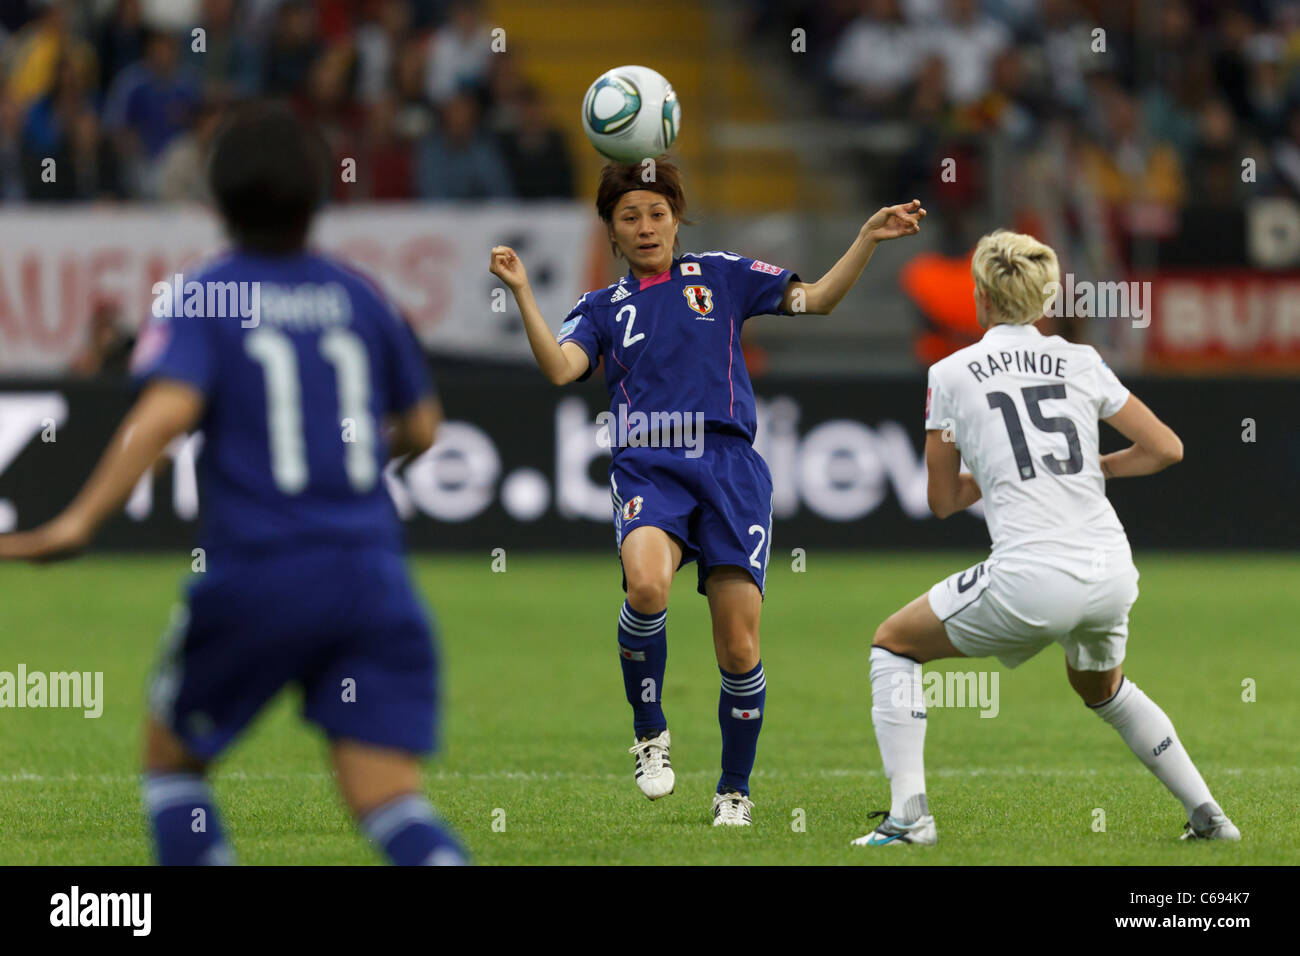 Yukari Kinga of Japan (2) heads the ball during the FIFA Women's World Cup final against the USA July 17, 2011. - Stock Image